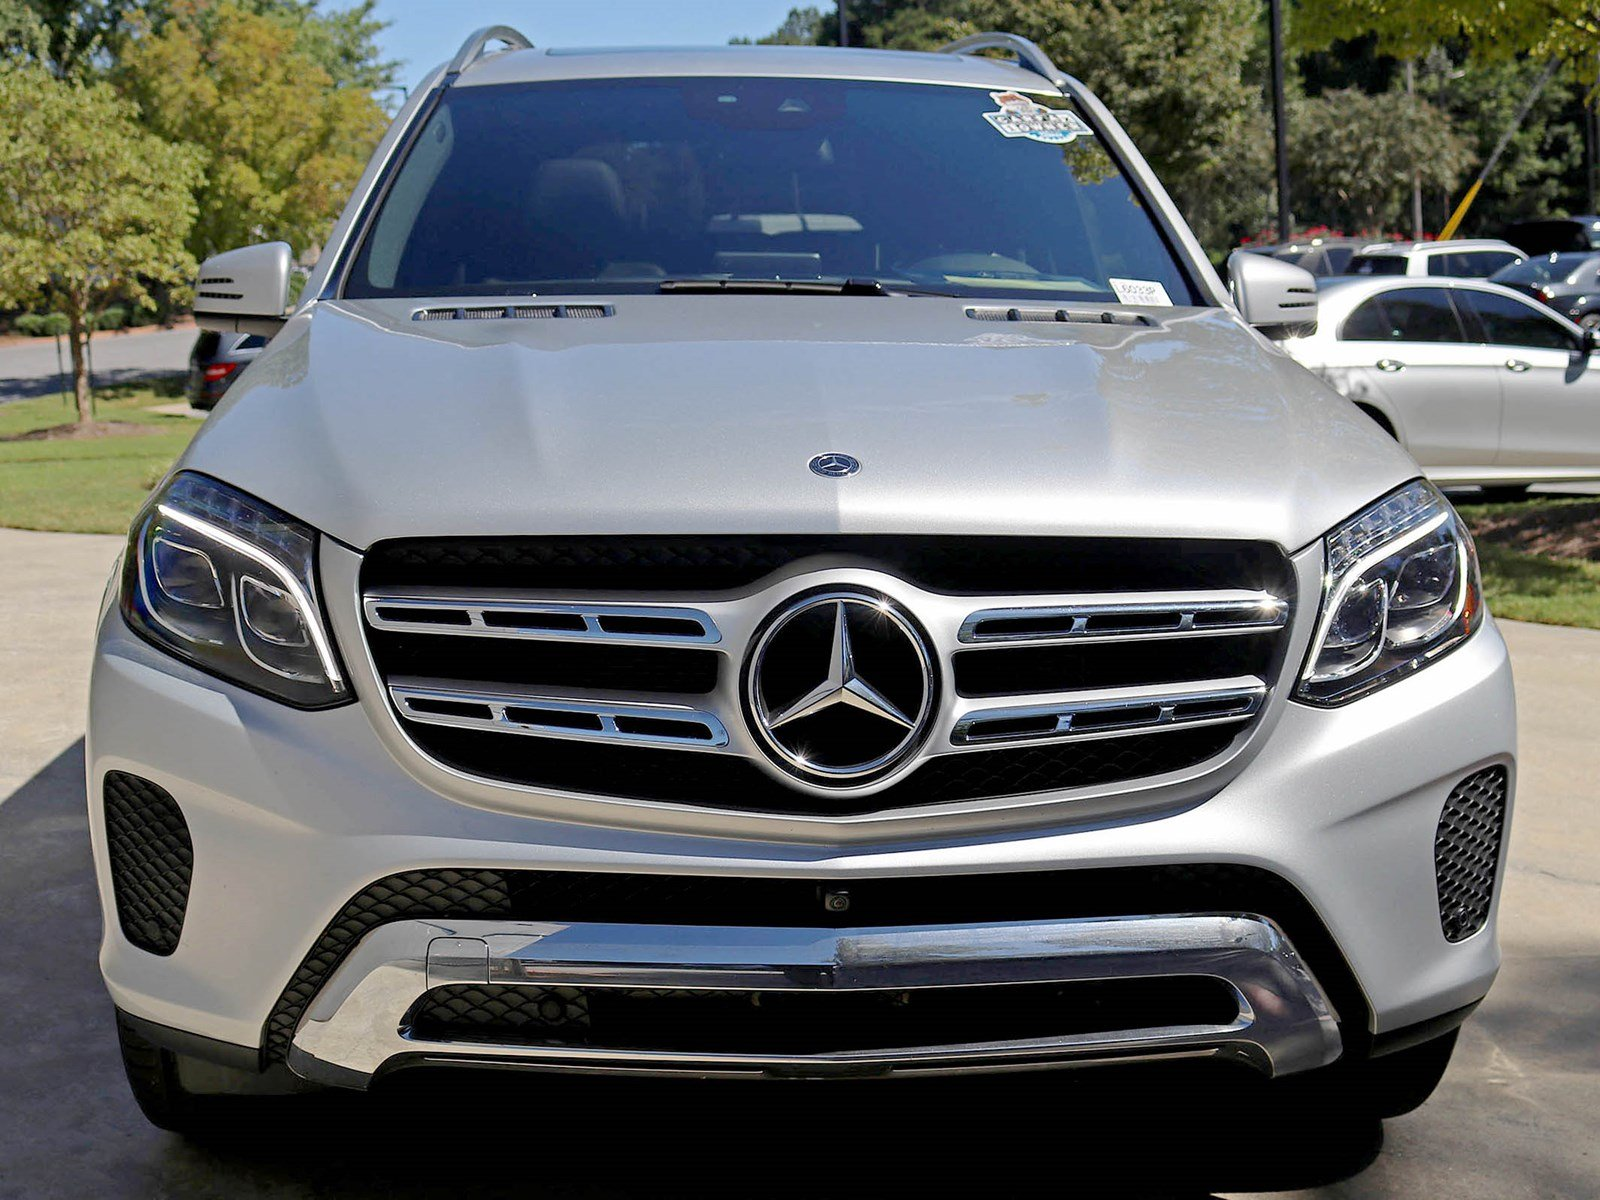 Certified Pre Owned 2018 Mercedes Benz GLS GLS 450 SUV in Atlanta